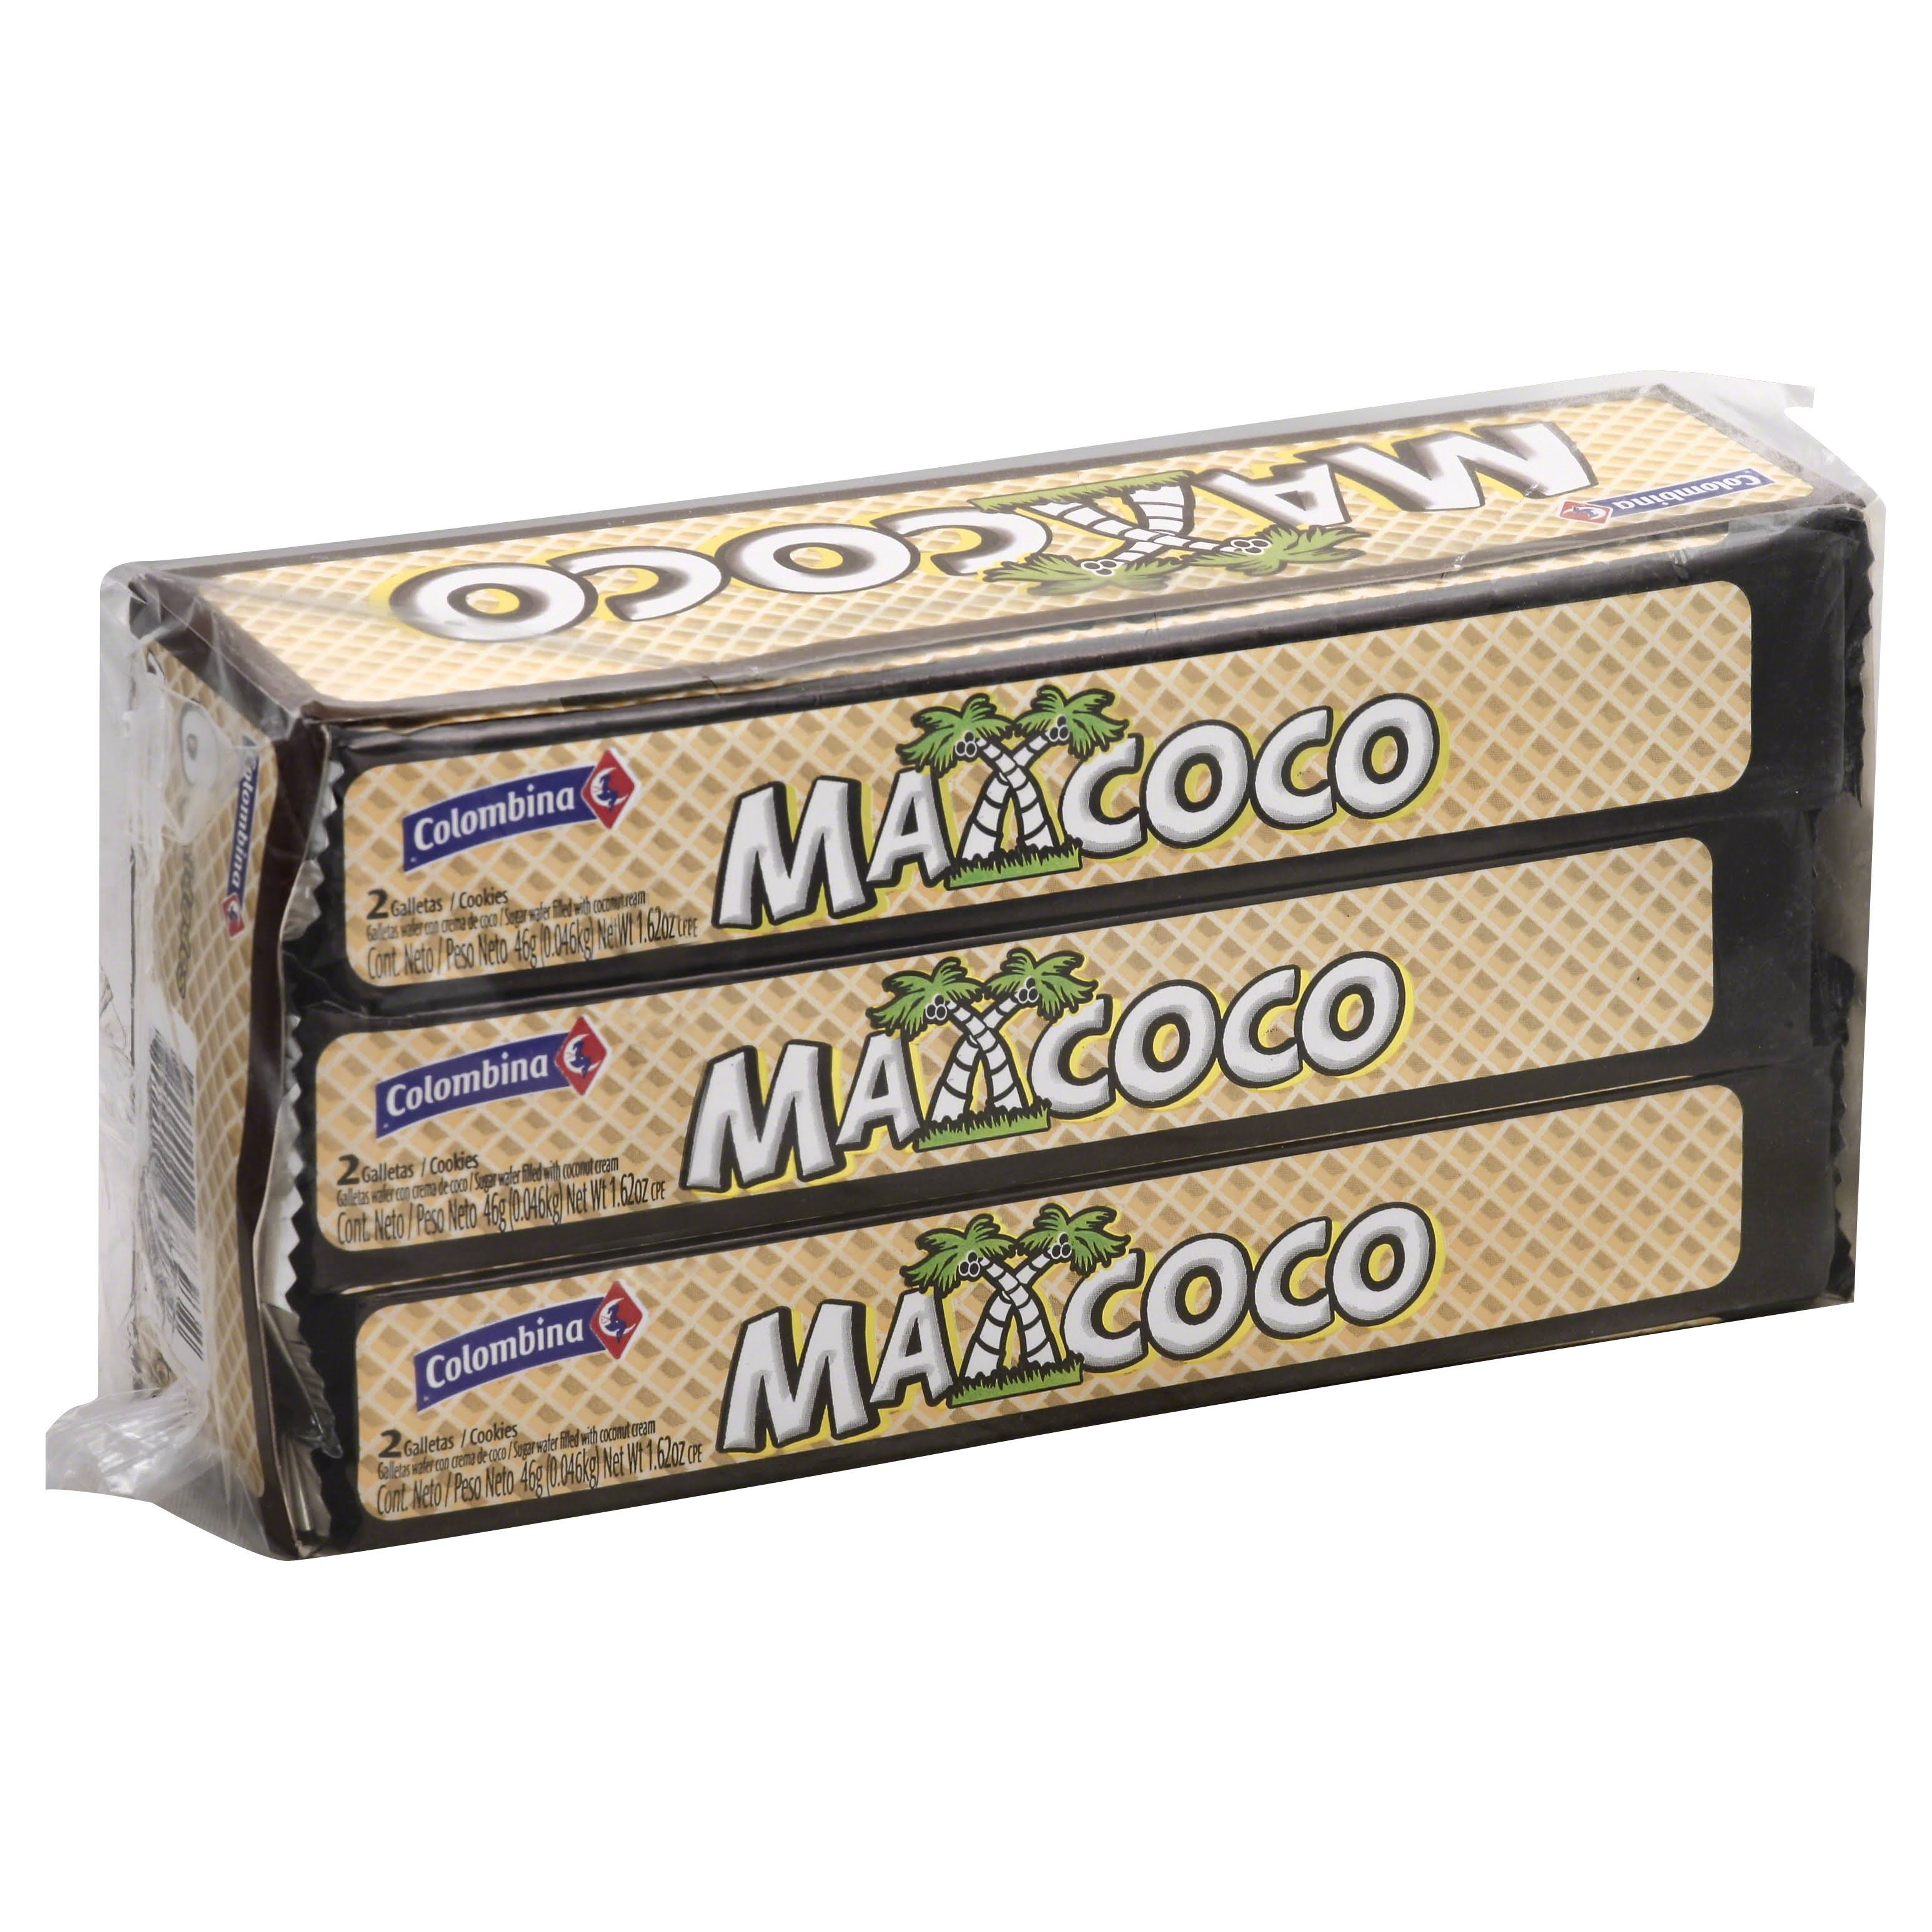 Mexcoco Wafers - Pack of 6